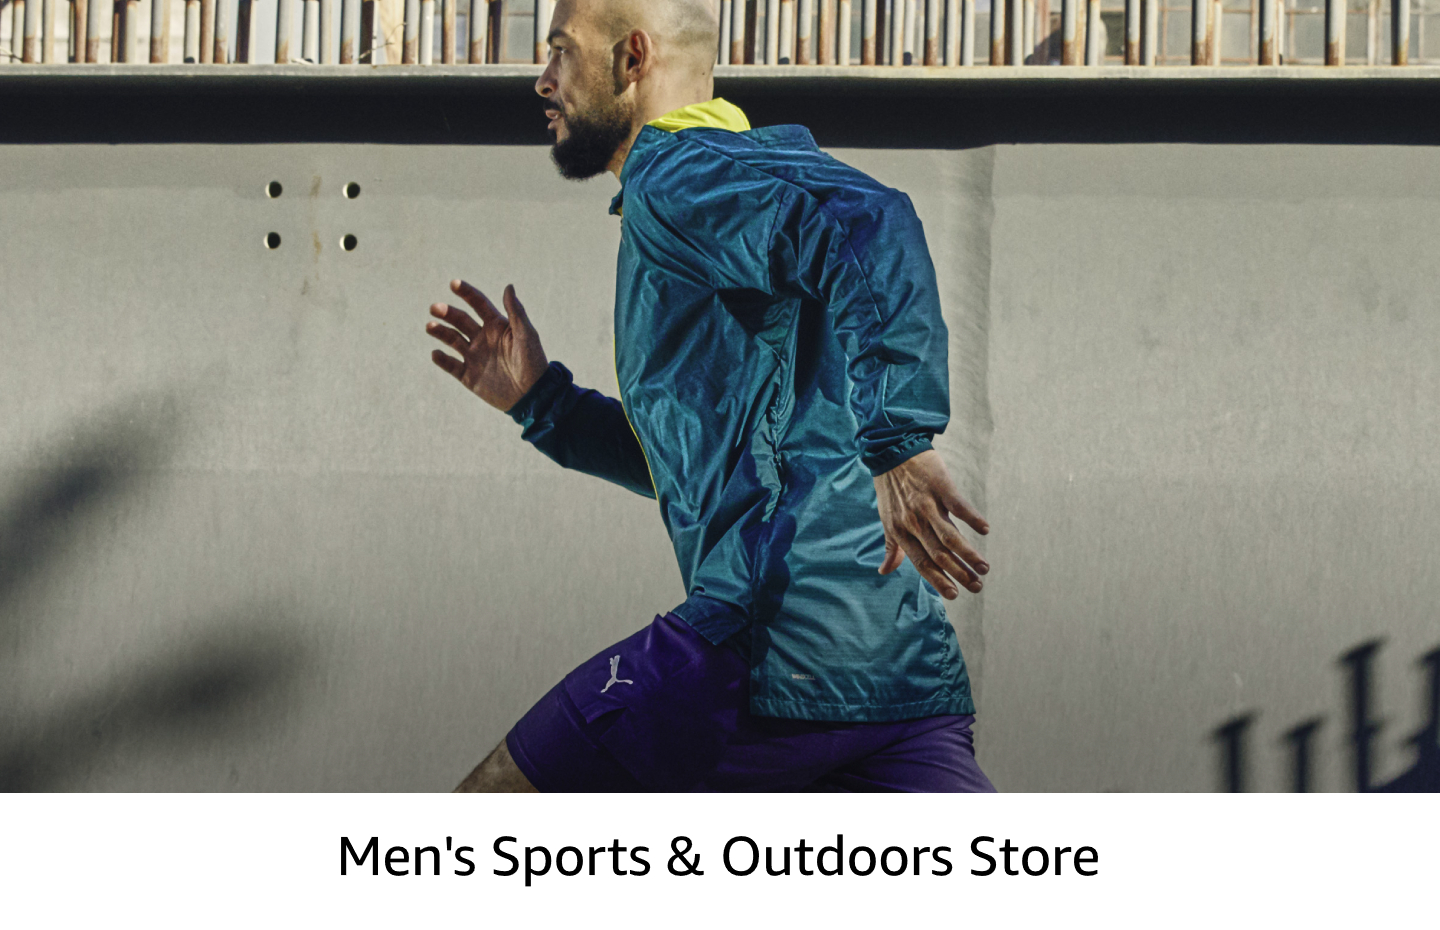 Men's sports clothing and shoes